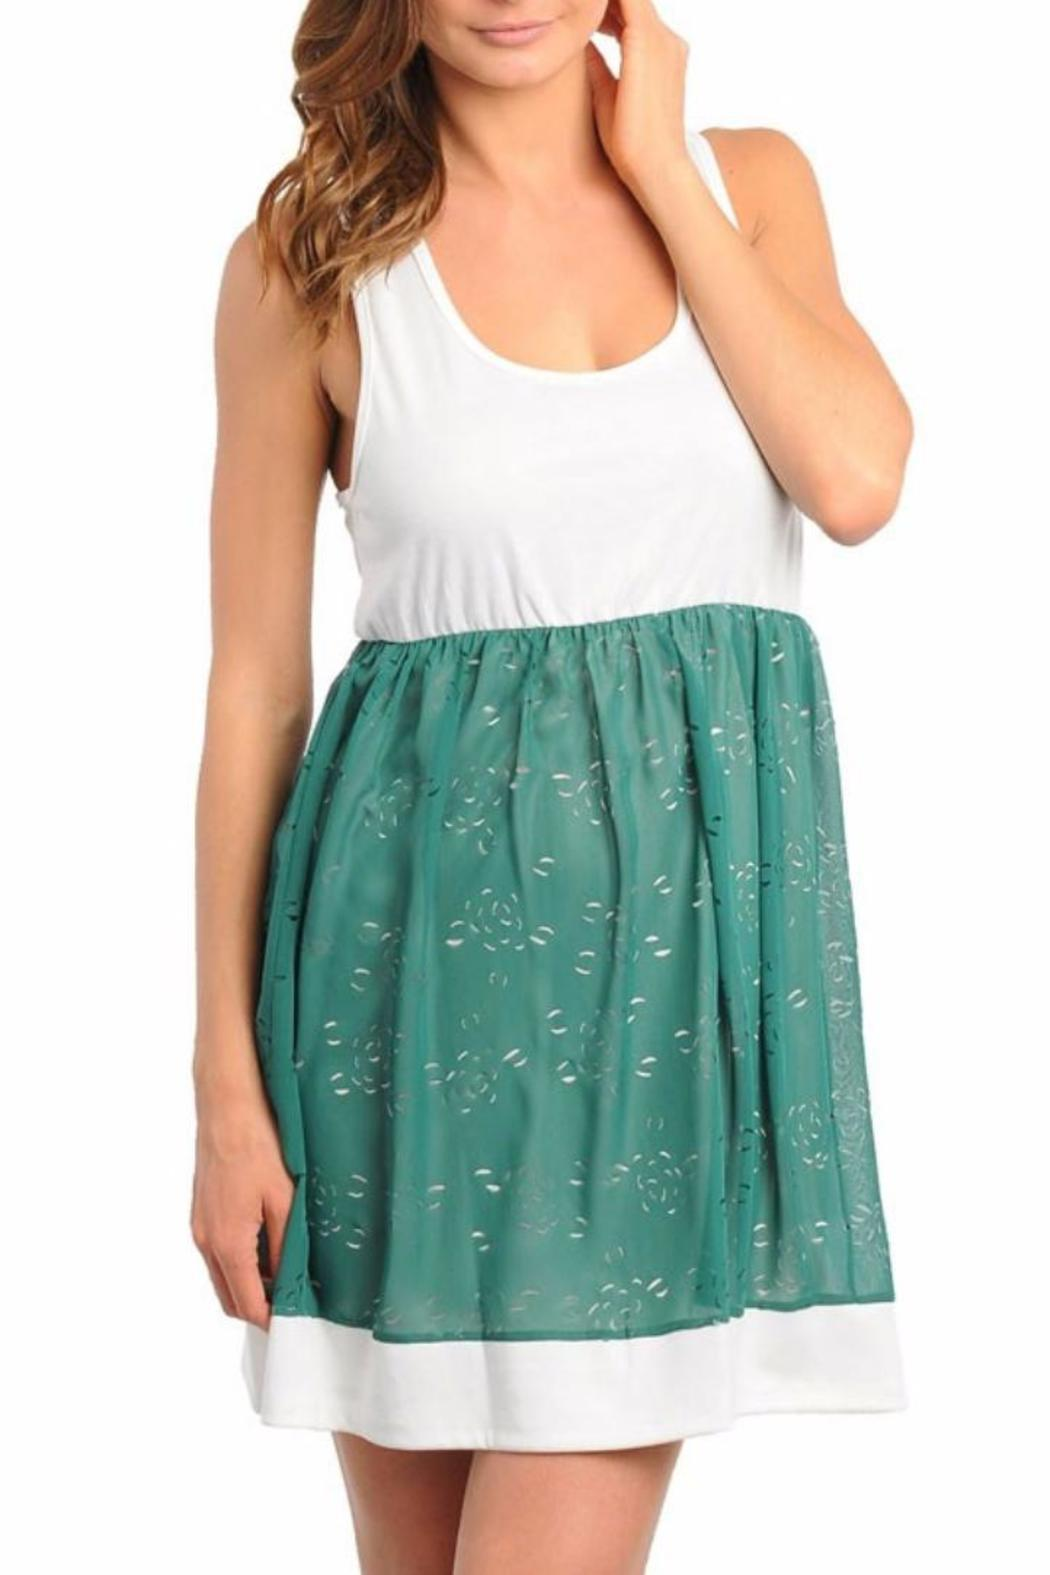 Lydia's Beryl Go Green Dress - Side Cropped Image